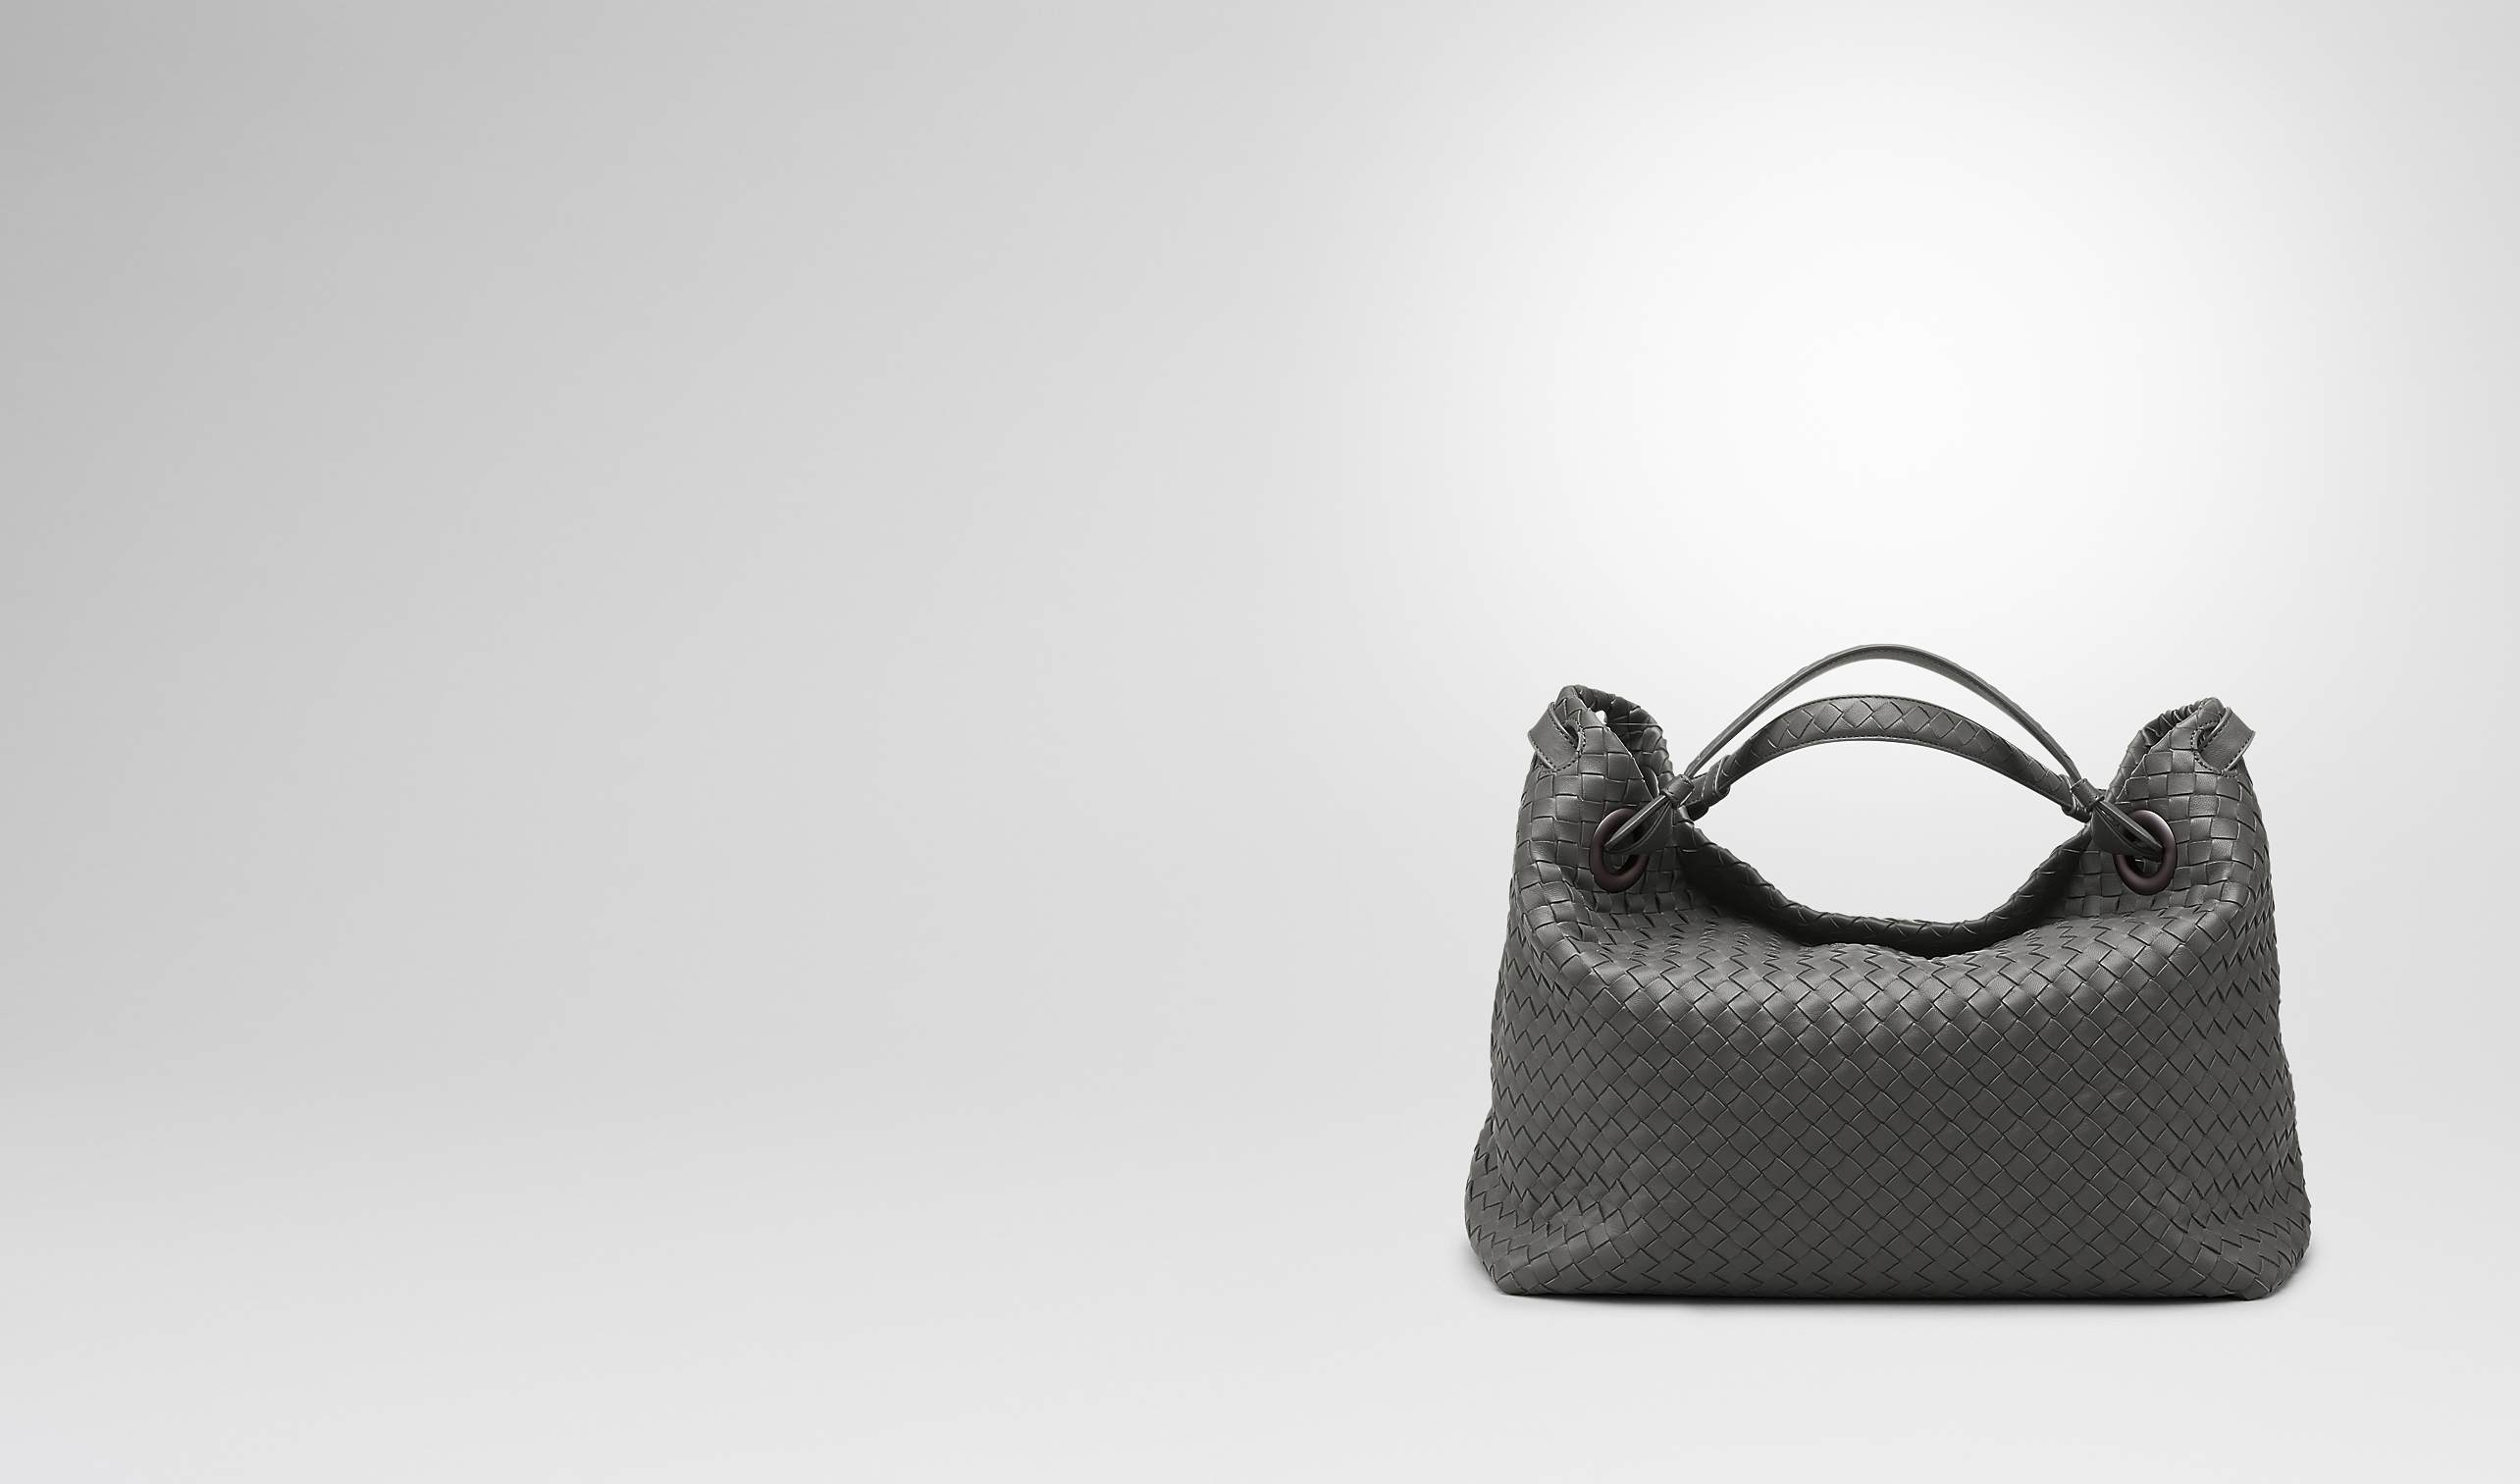 BOTTEGA VENETA Shoulder or hobo bag D MEDIUM SHOULDER BAG IN NEW LIGHT GREY INTRECCIATO NAPPA pl